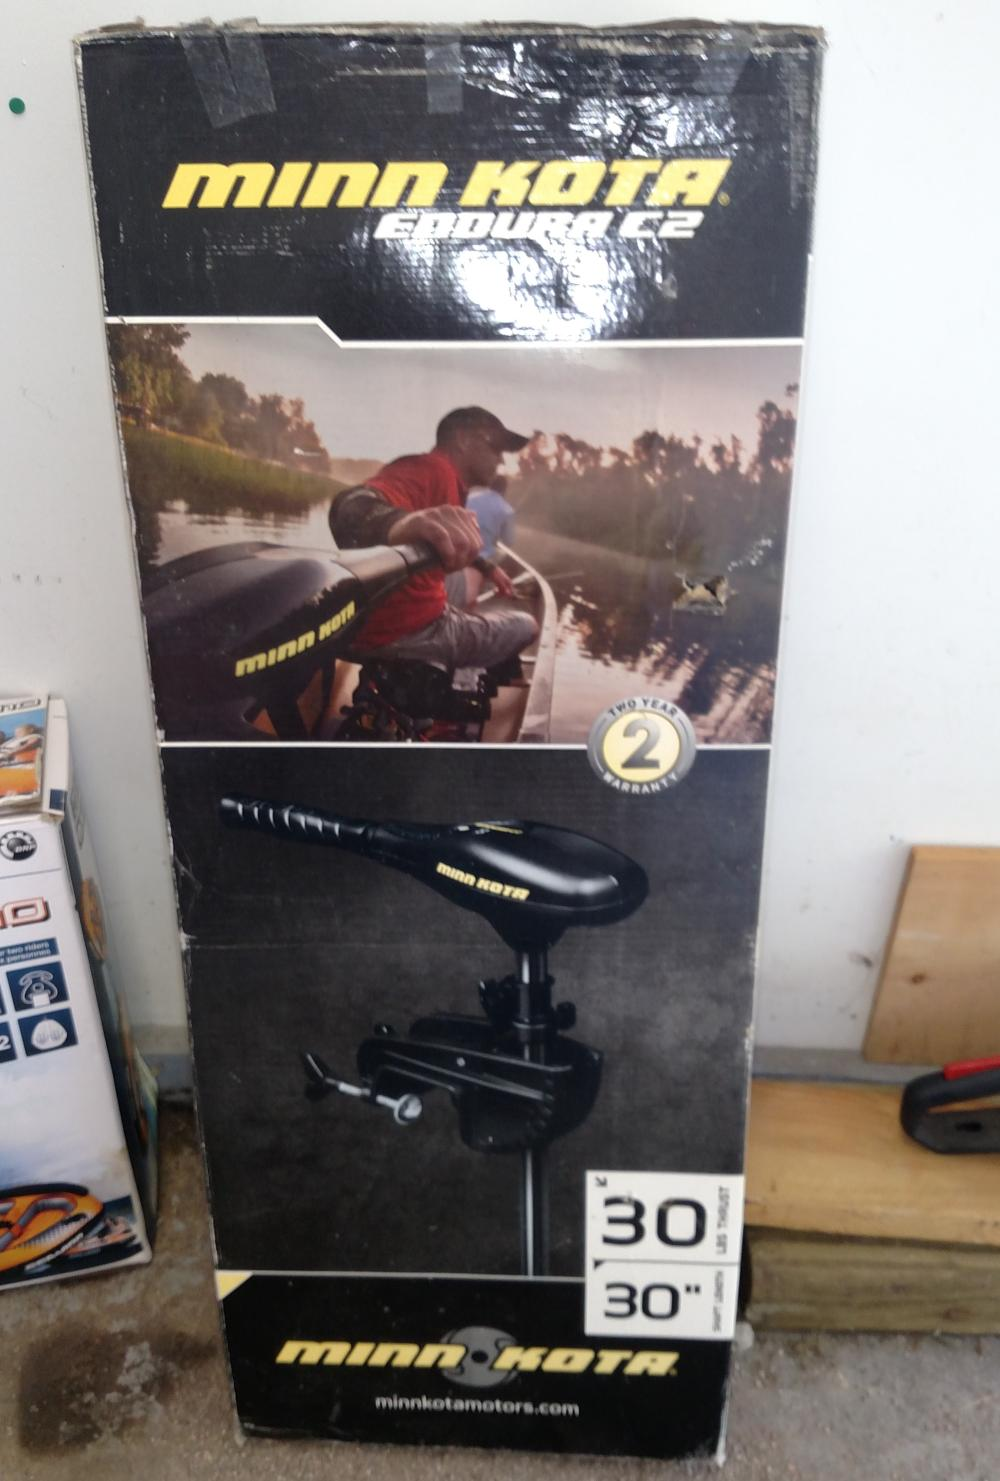 minn kota endura c2 trolling motor- never out of box